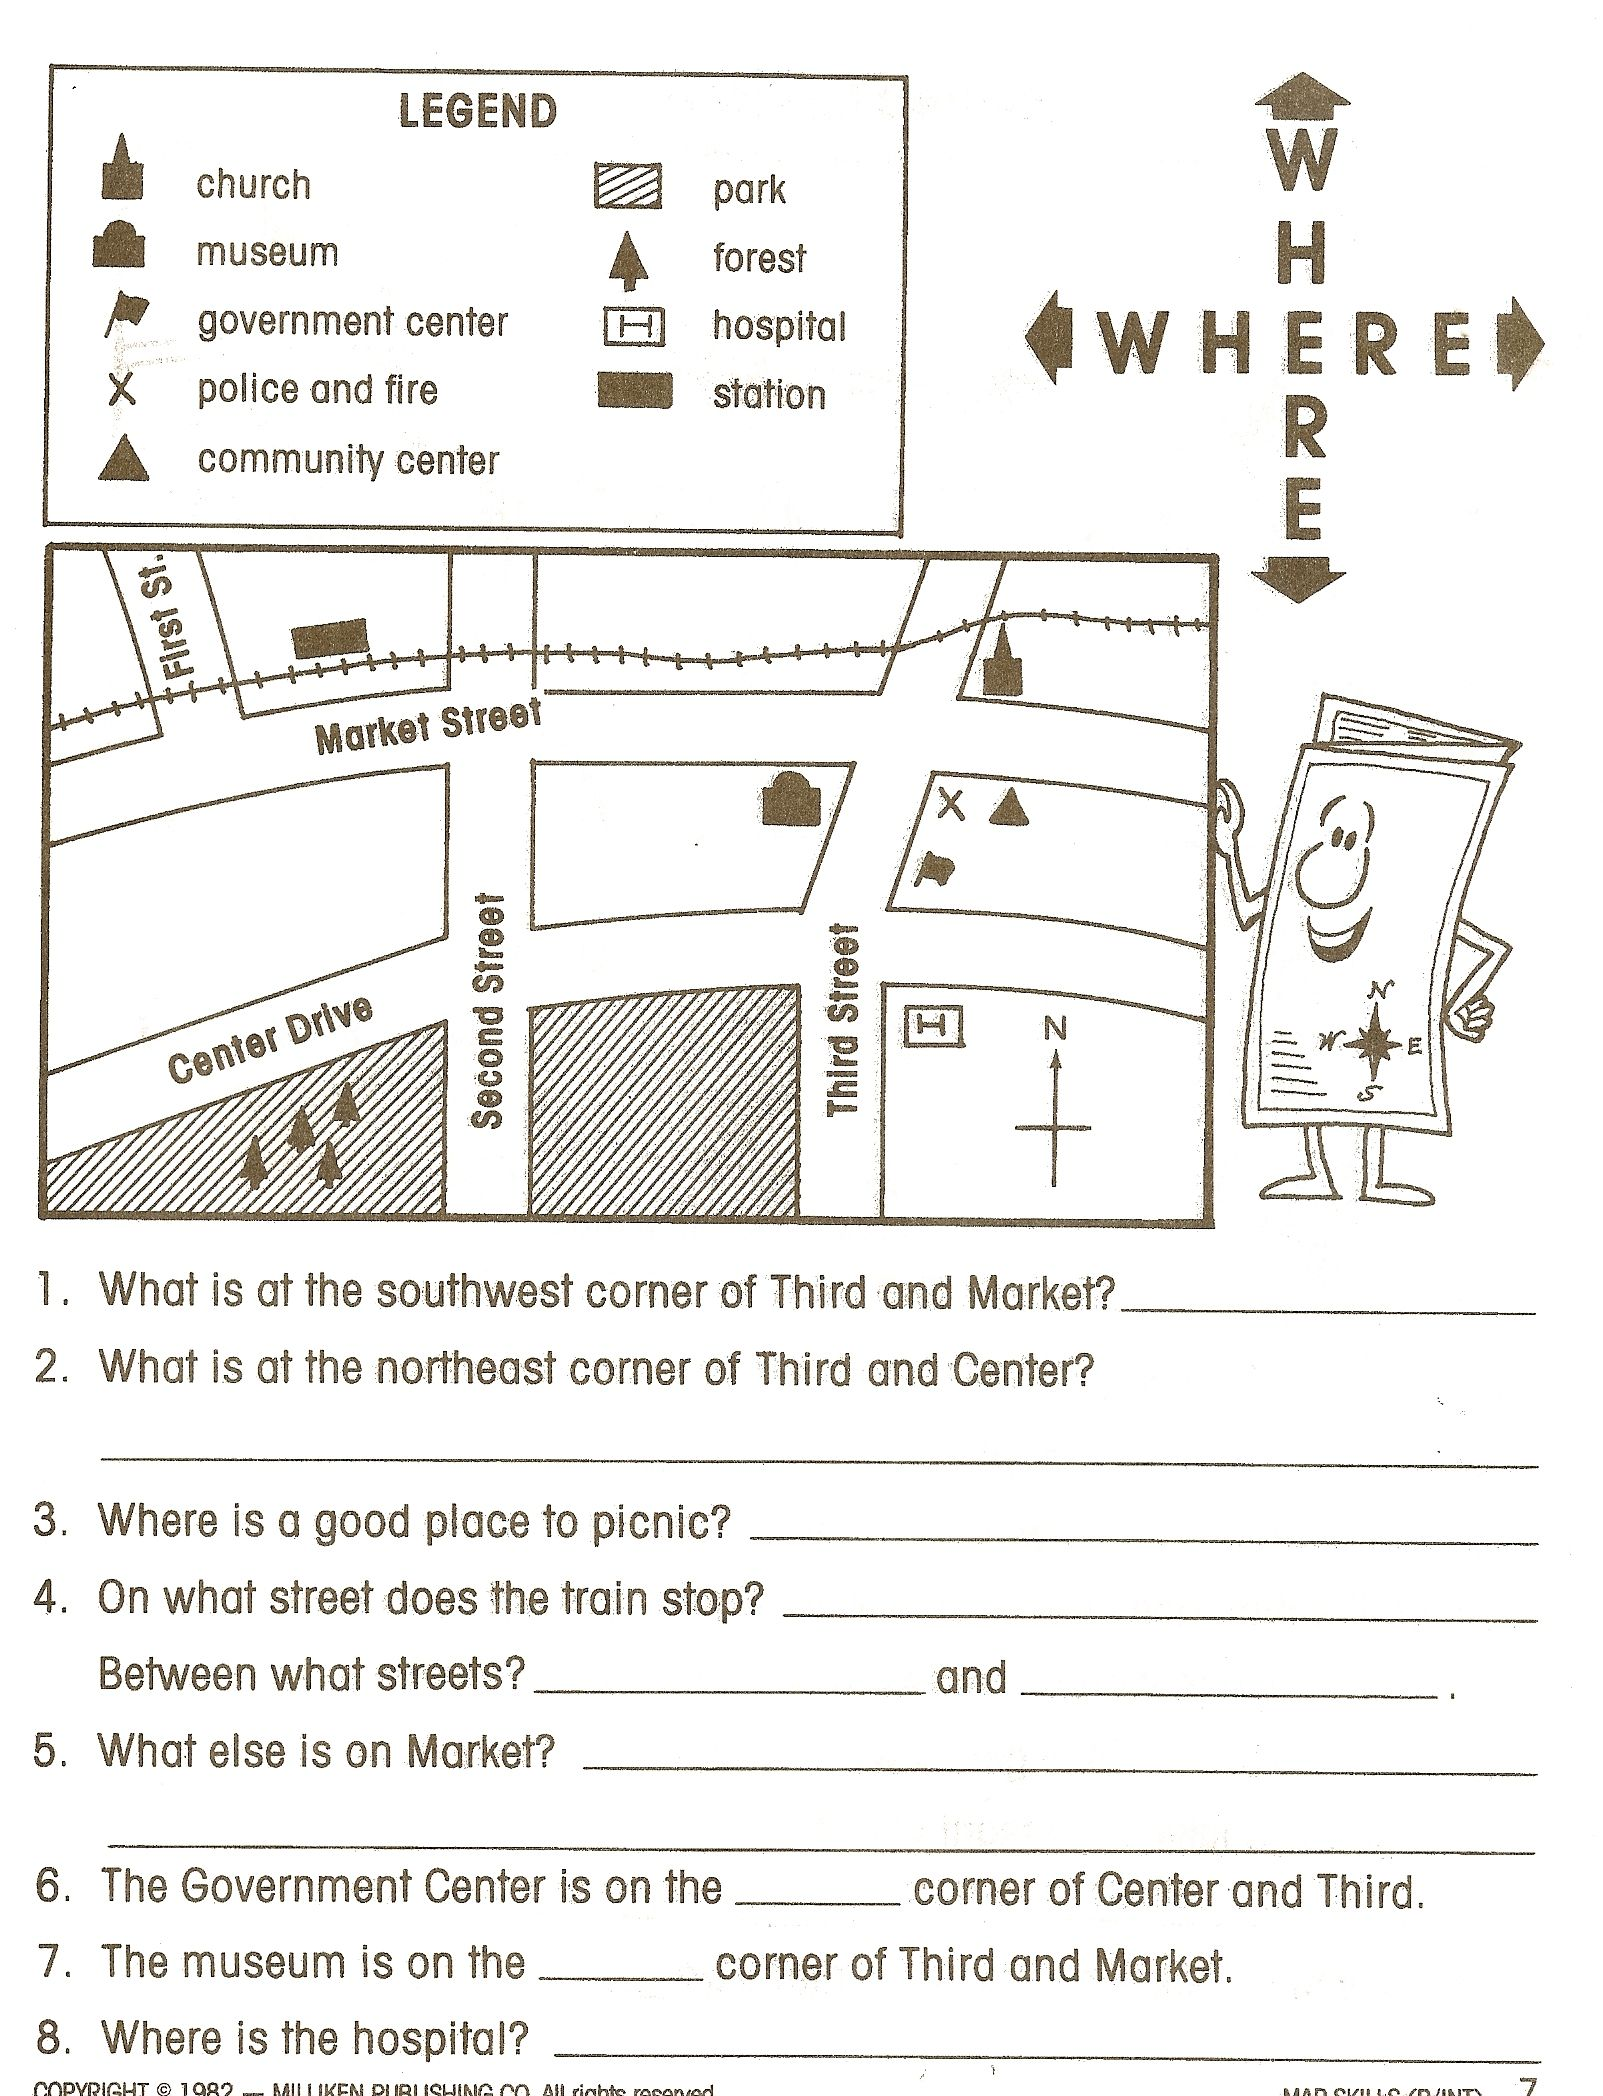 Worksheets Social Studies Worksheets For 4th Grade social studies worksheets google search search